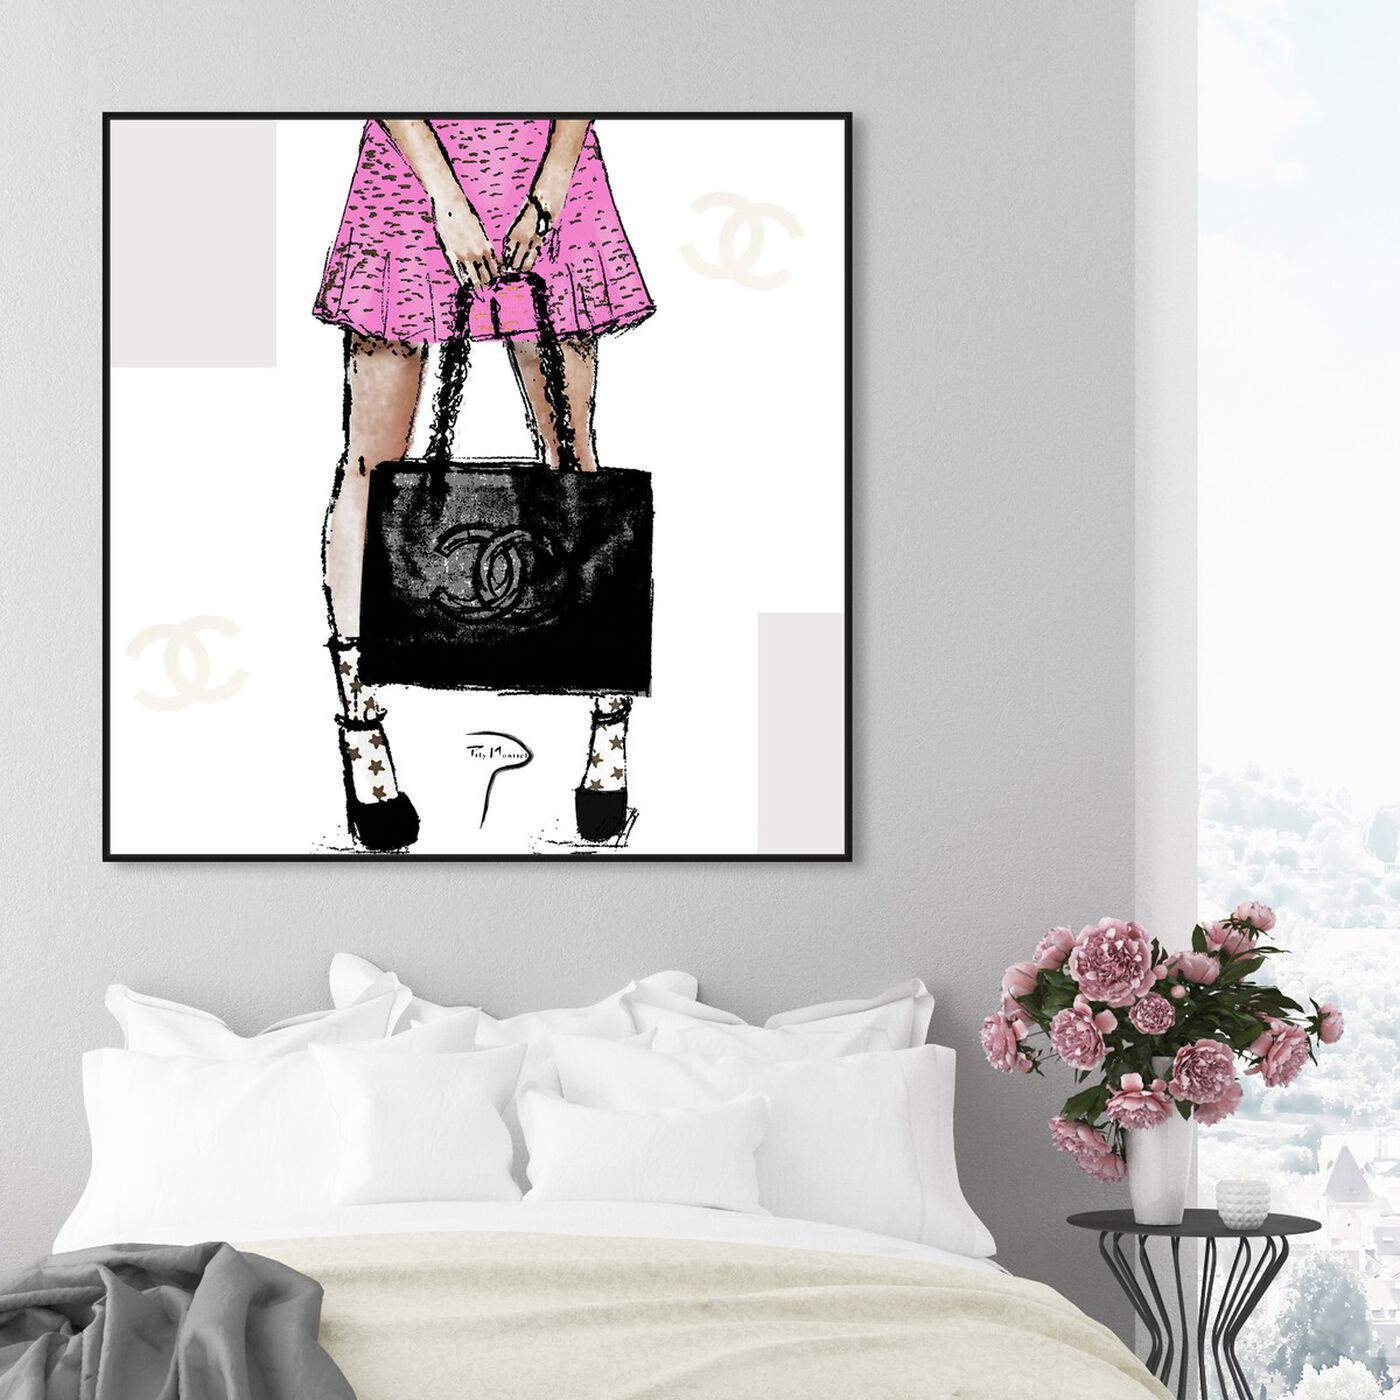 Hanging view of Pily Montiel - Tweed skirt featuring fashion and glam and outfits art.